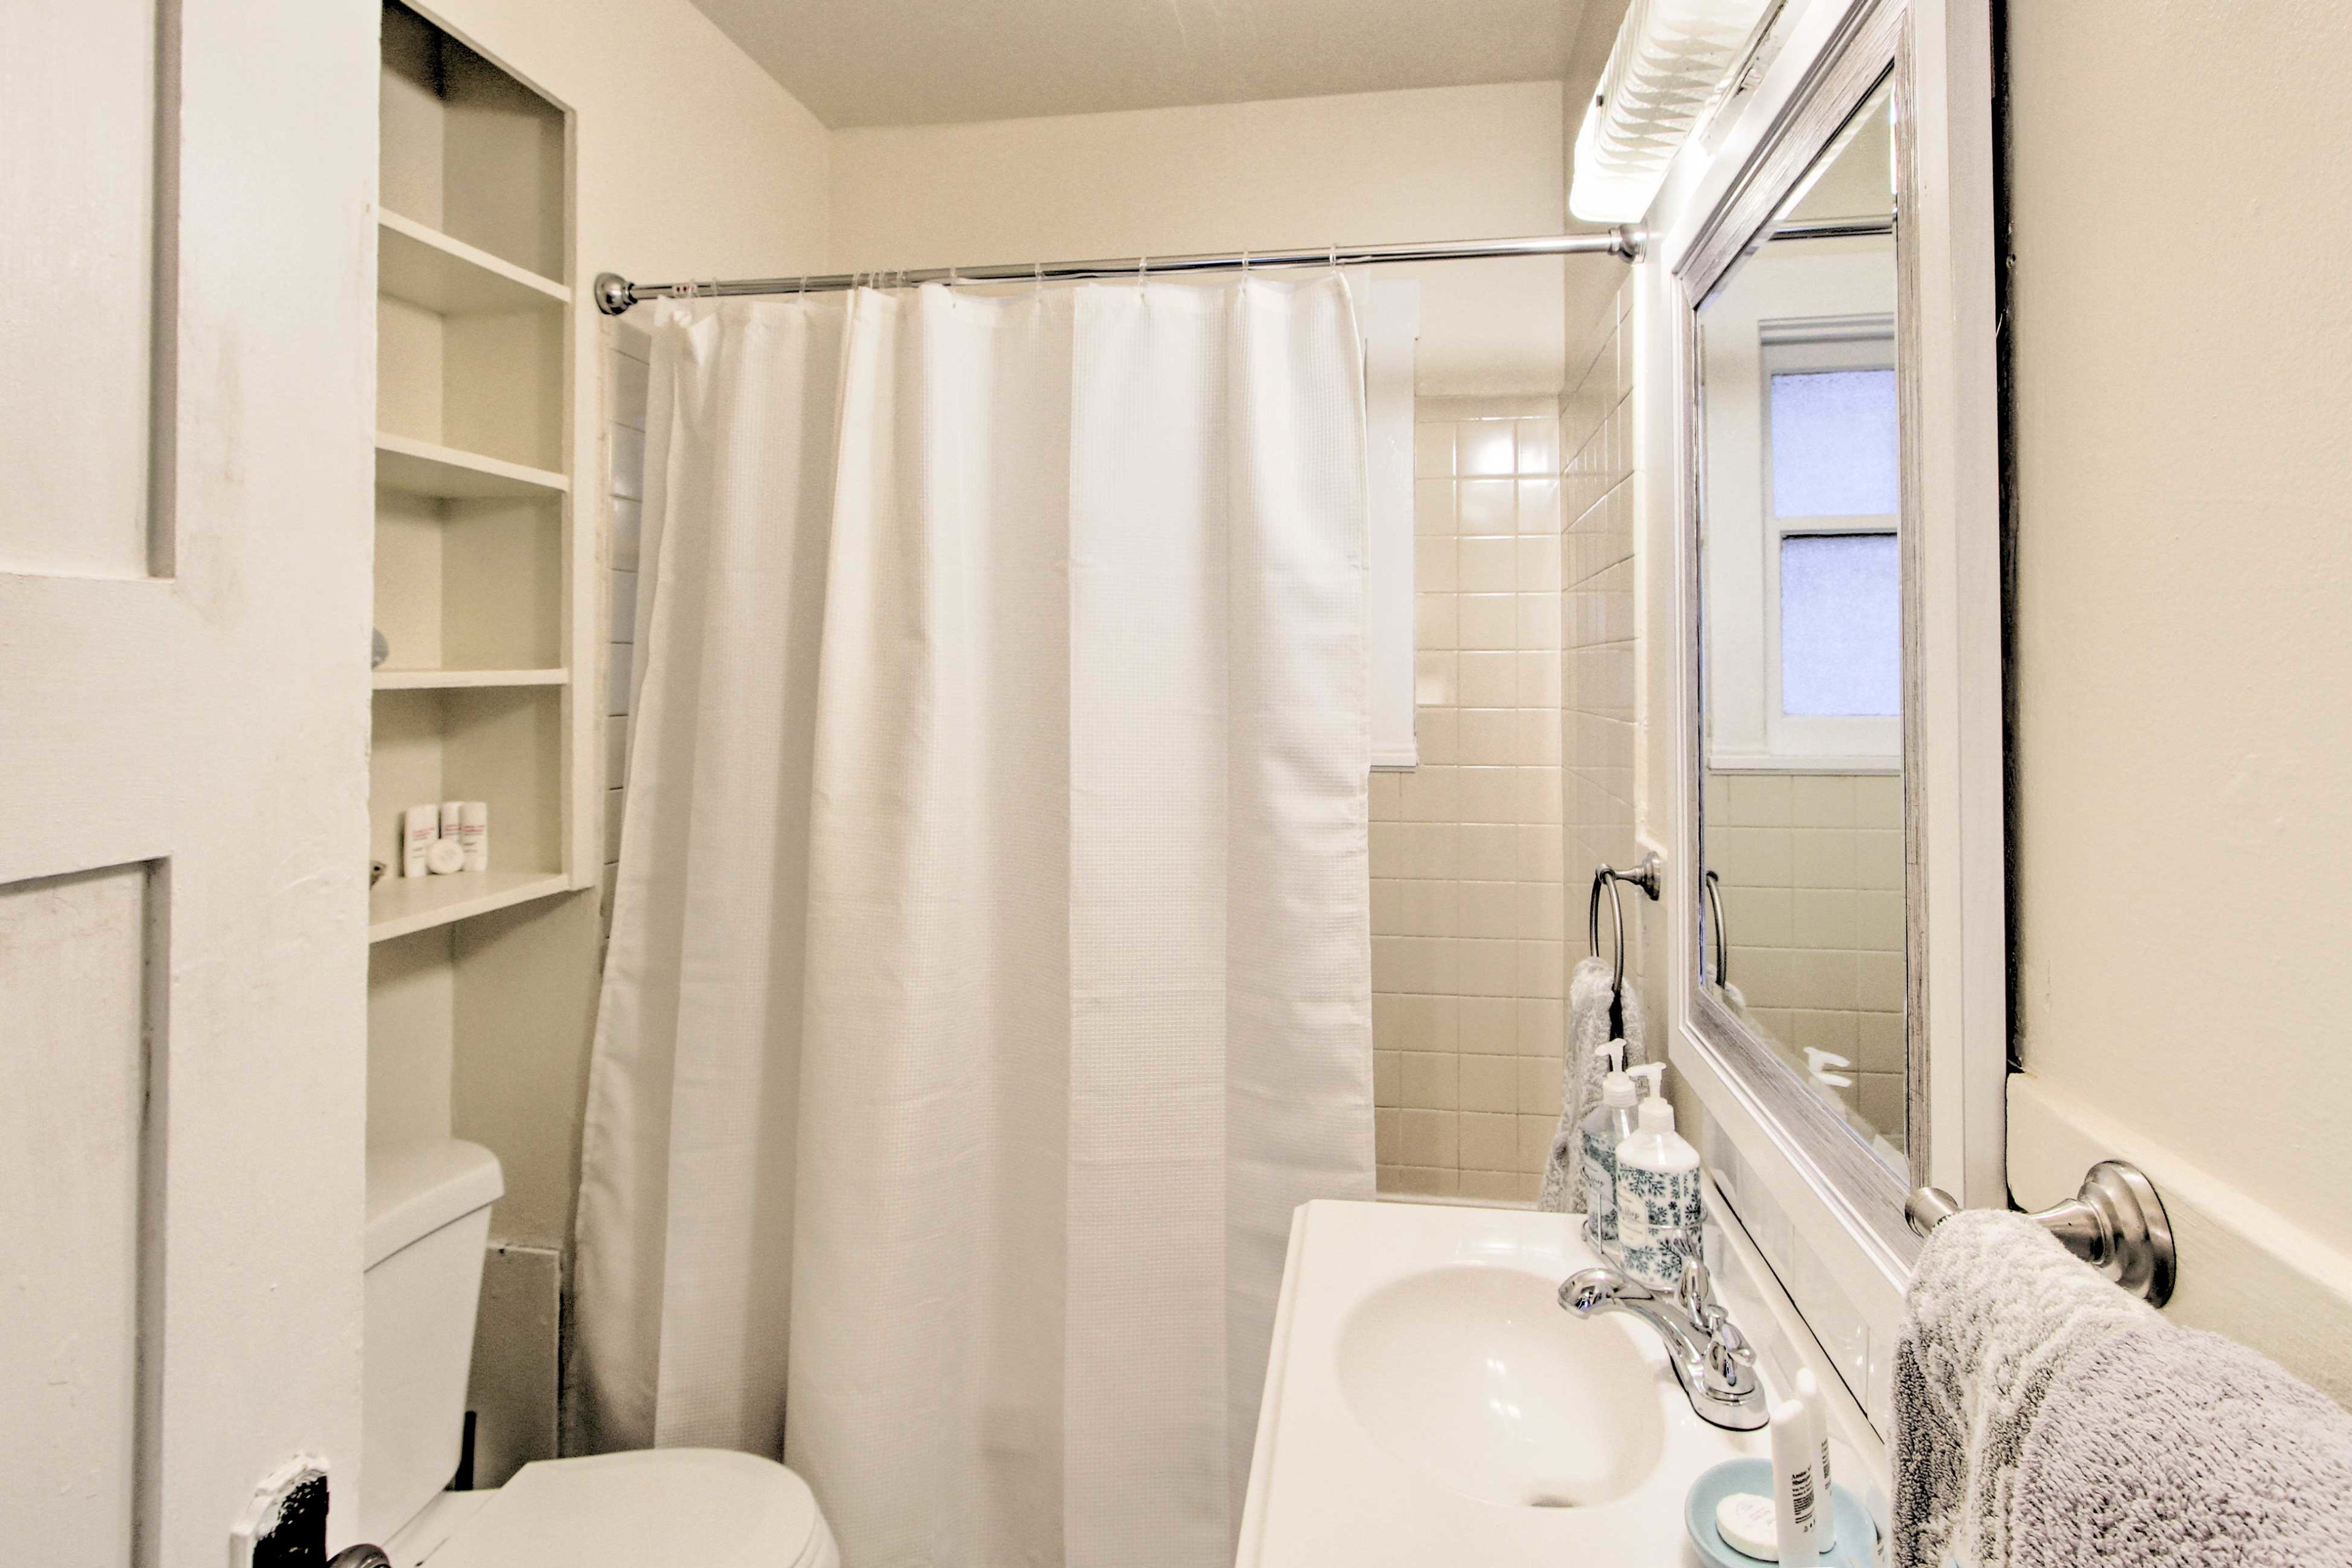 Towels, linens, and complimentary toiletries are provided.